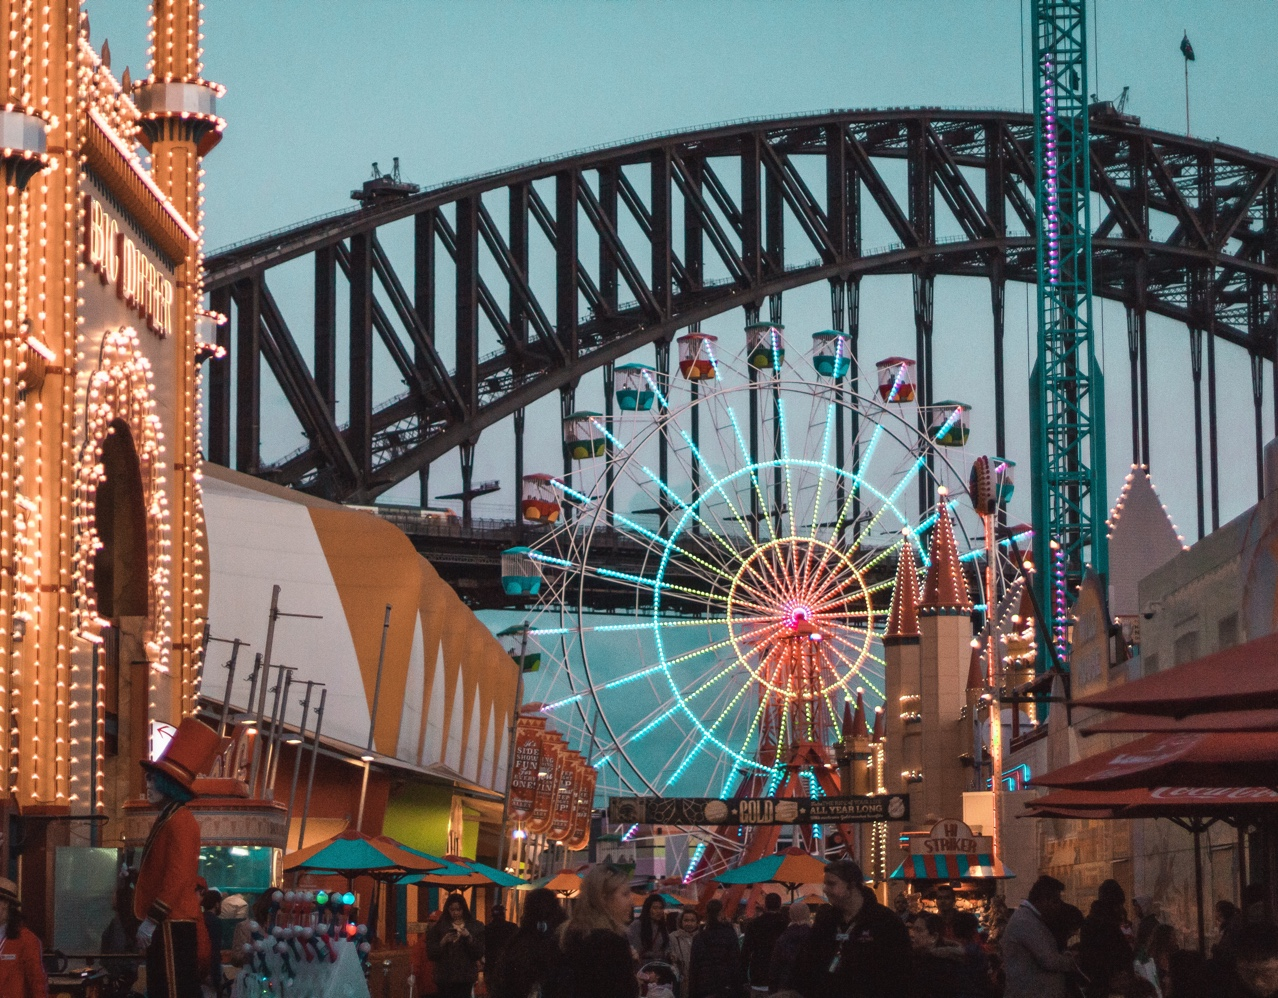 Busy street view of Sydney with Carousel and bridge in the background